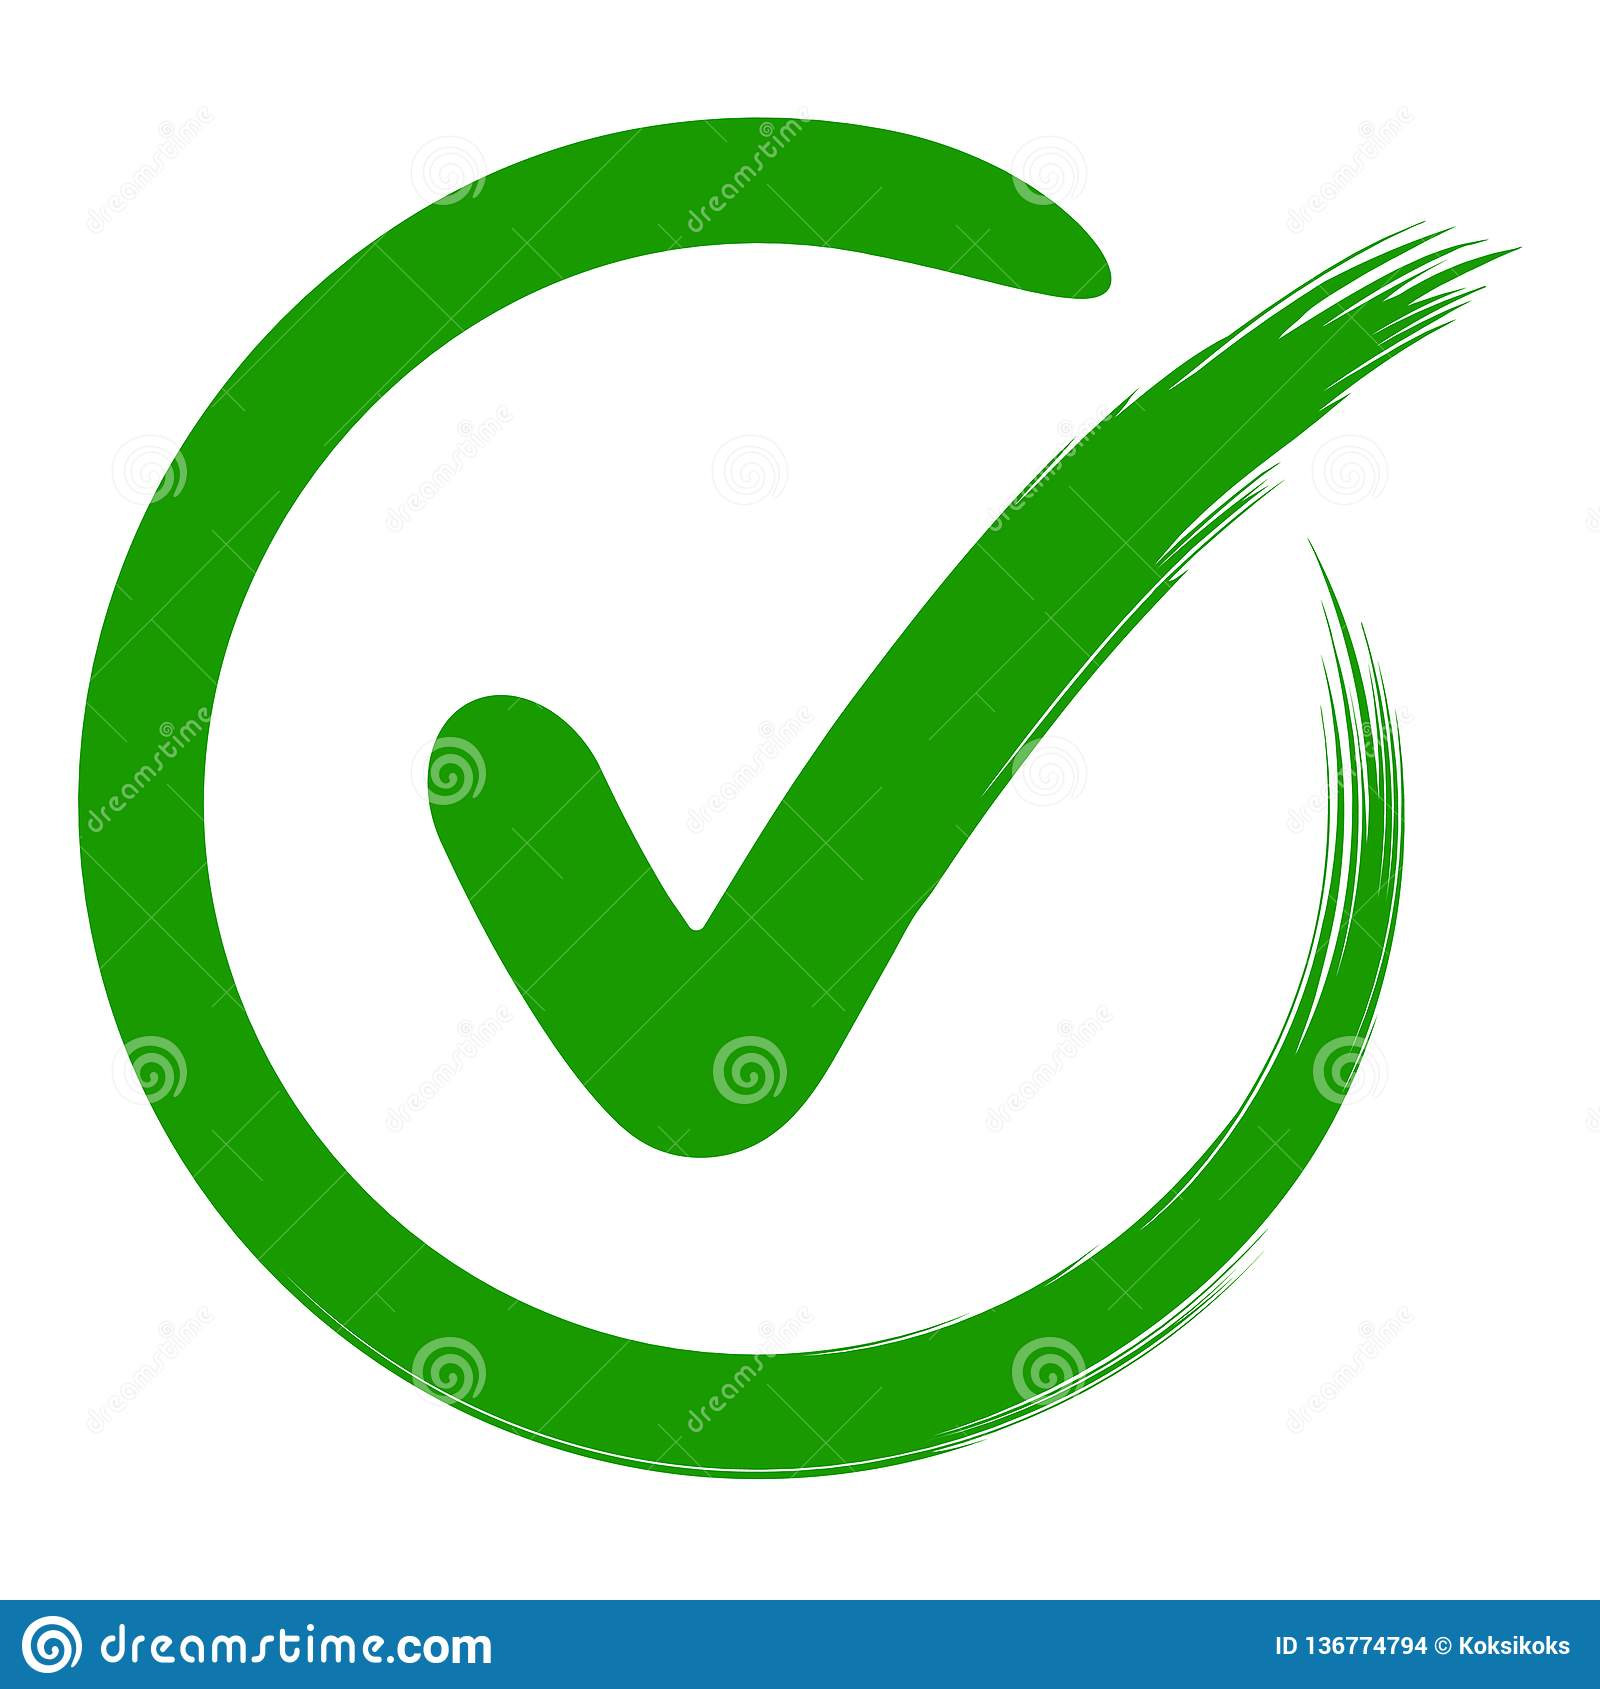 Approval symbol check mark in a circle, drawn hand, vector green sign OK approval or development checklist. personal choice mark